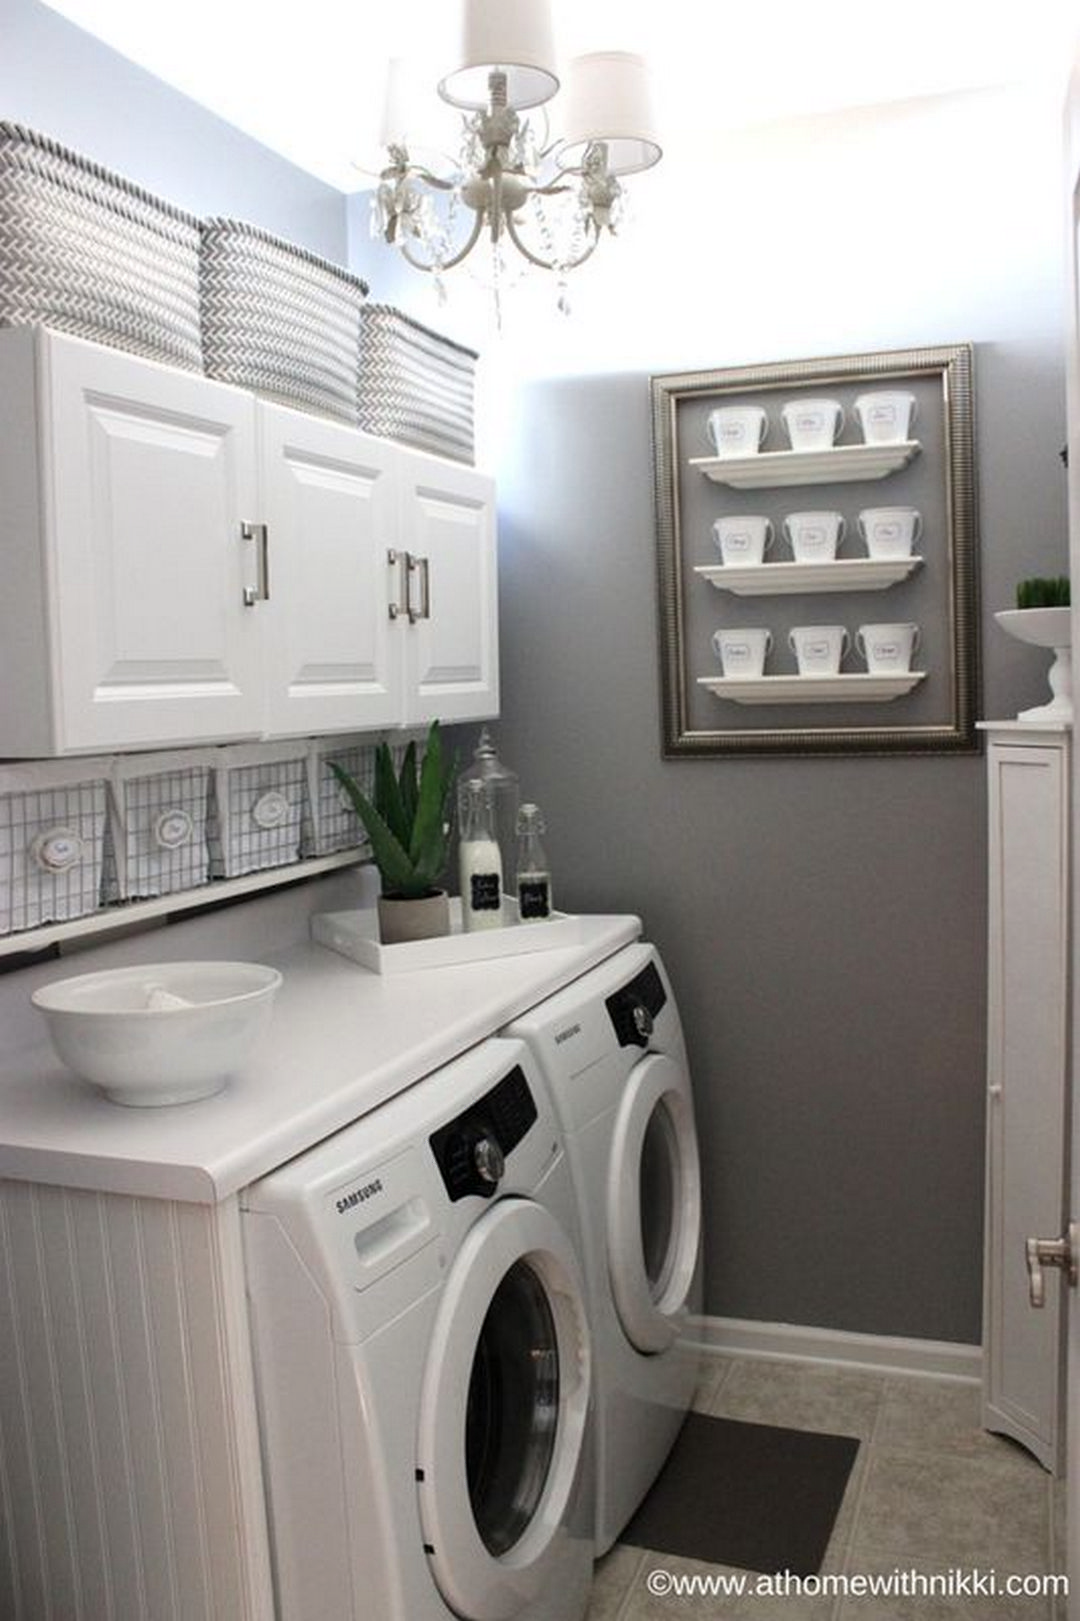 57 nice laundry room interior ideas laundry room on paint for laundry room floor ideas images id=33138